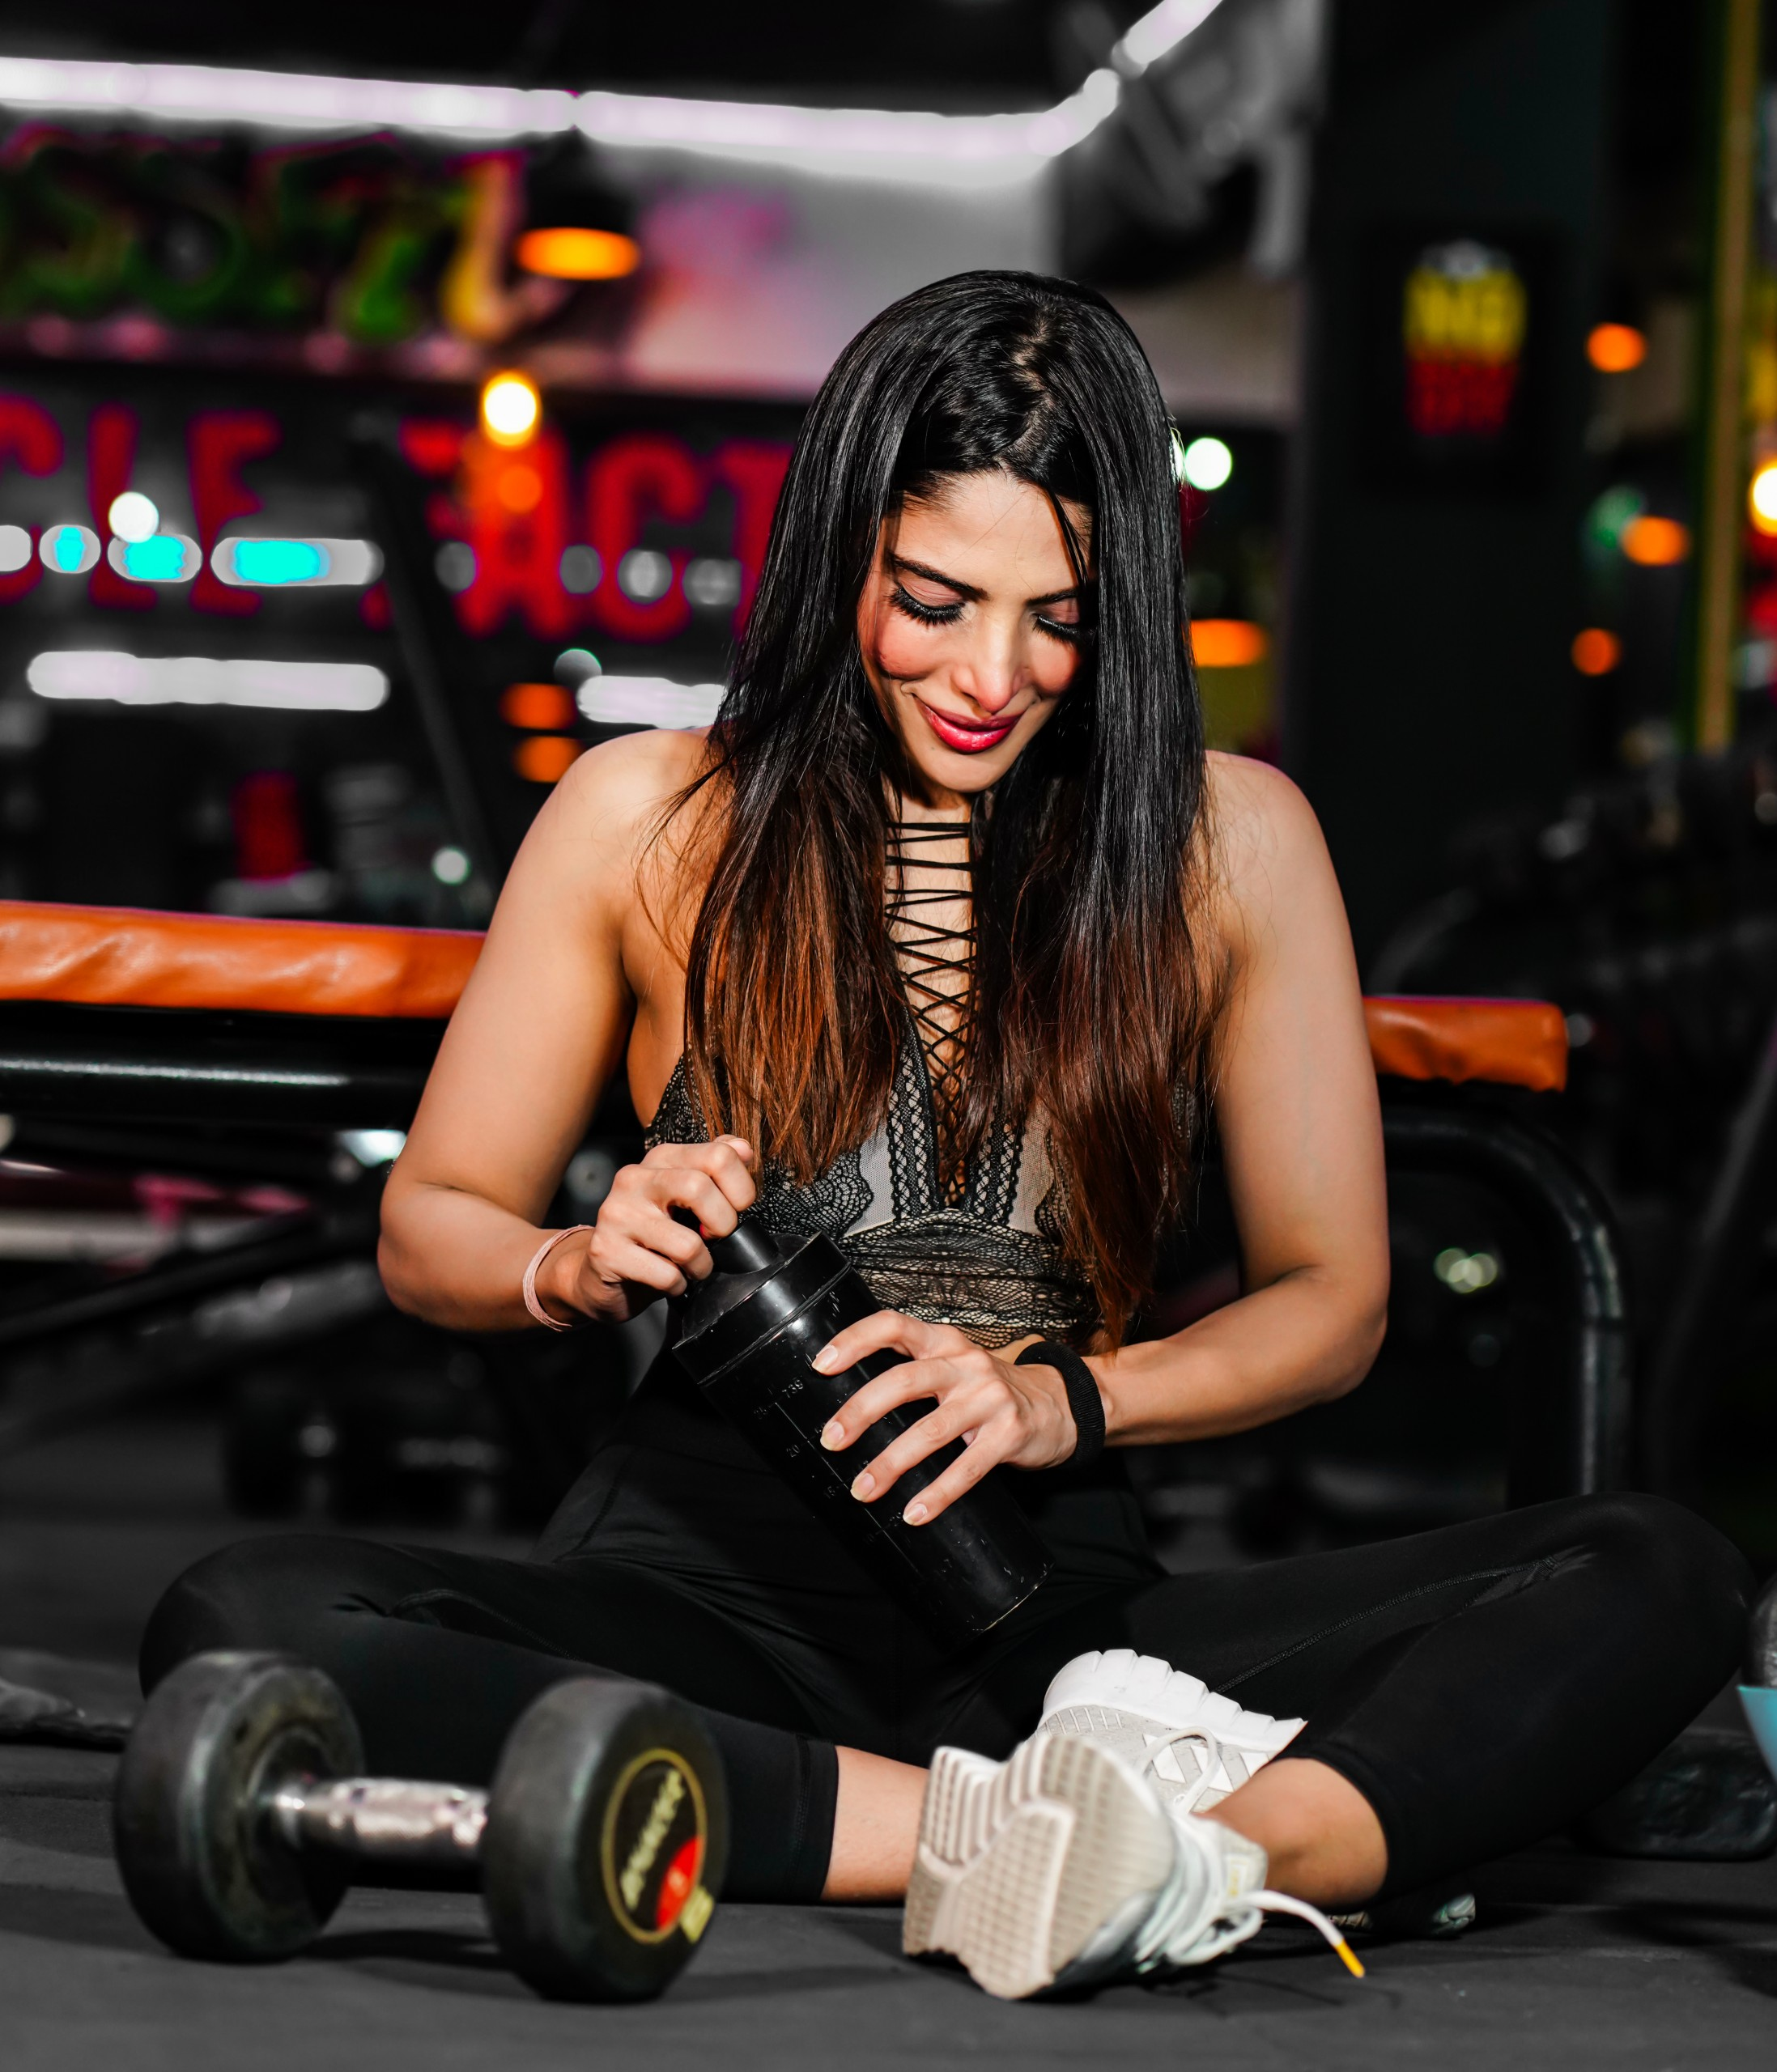 Fitness girl sitting on mat and relaxing after sports training in gym